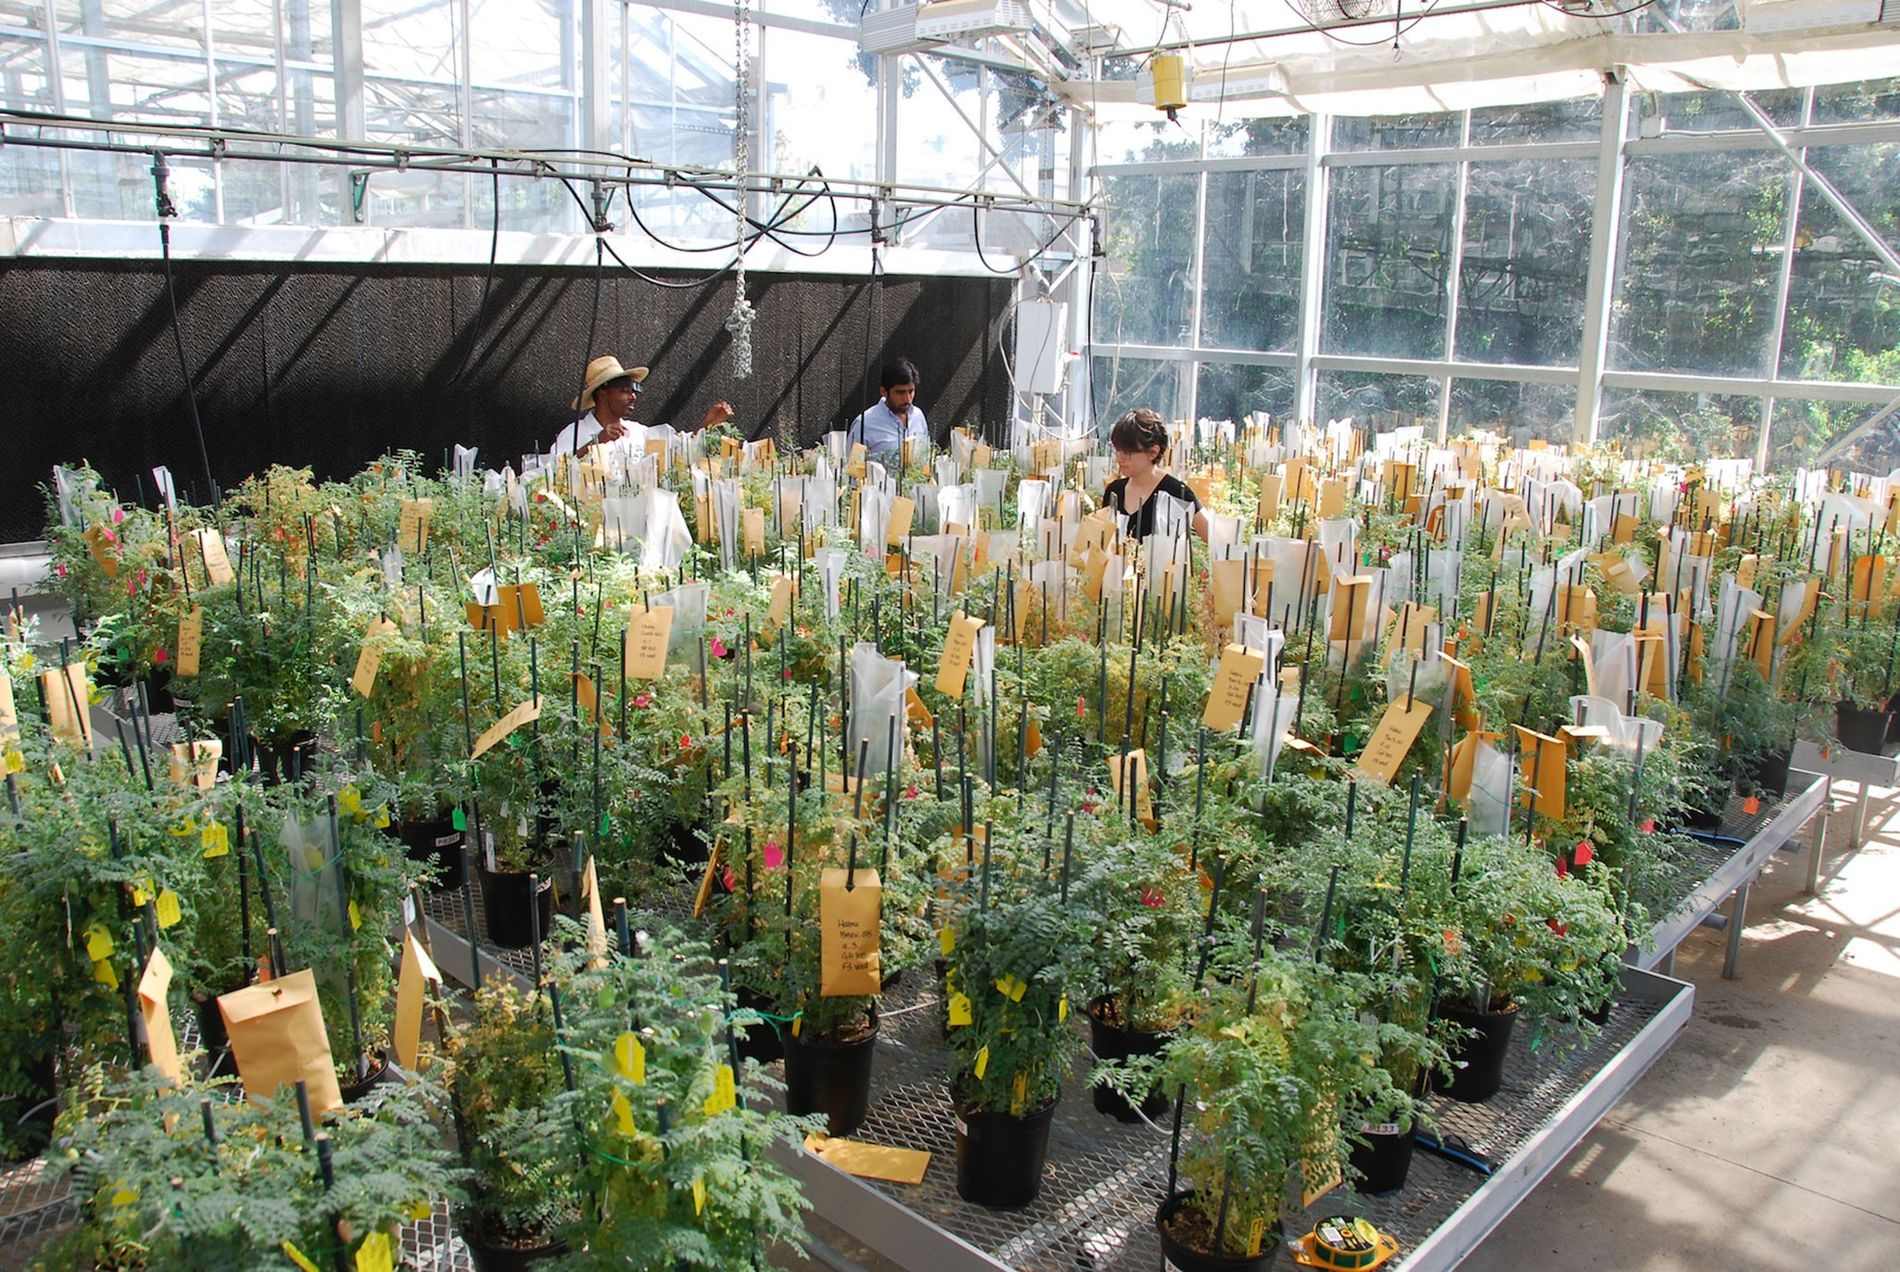 Chickpea pre-breeding in action at the University of California, Davis. Pre-breeding is the process of crossing ...